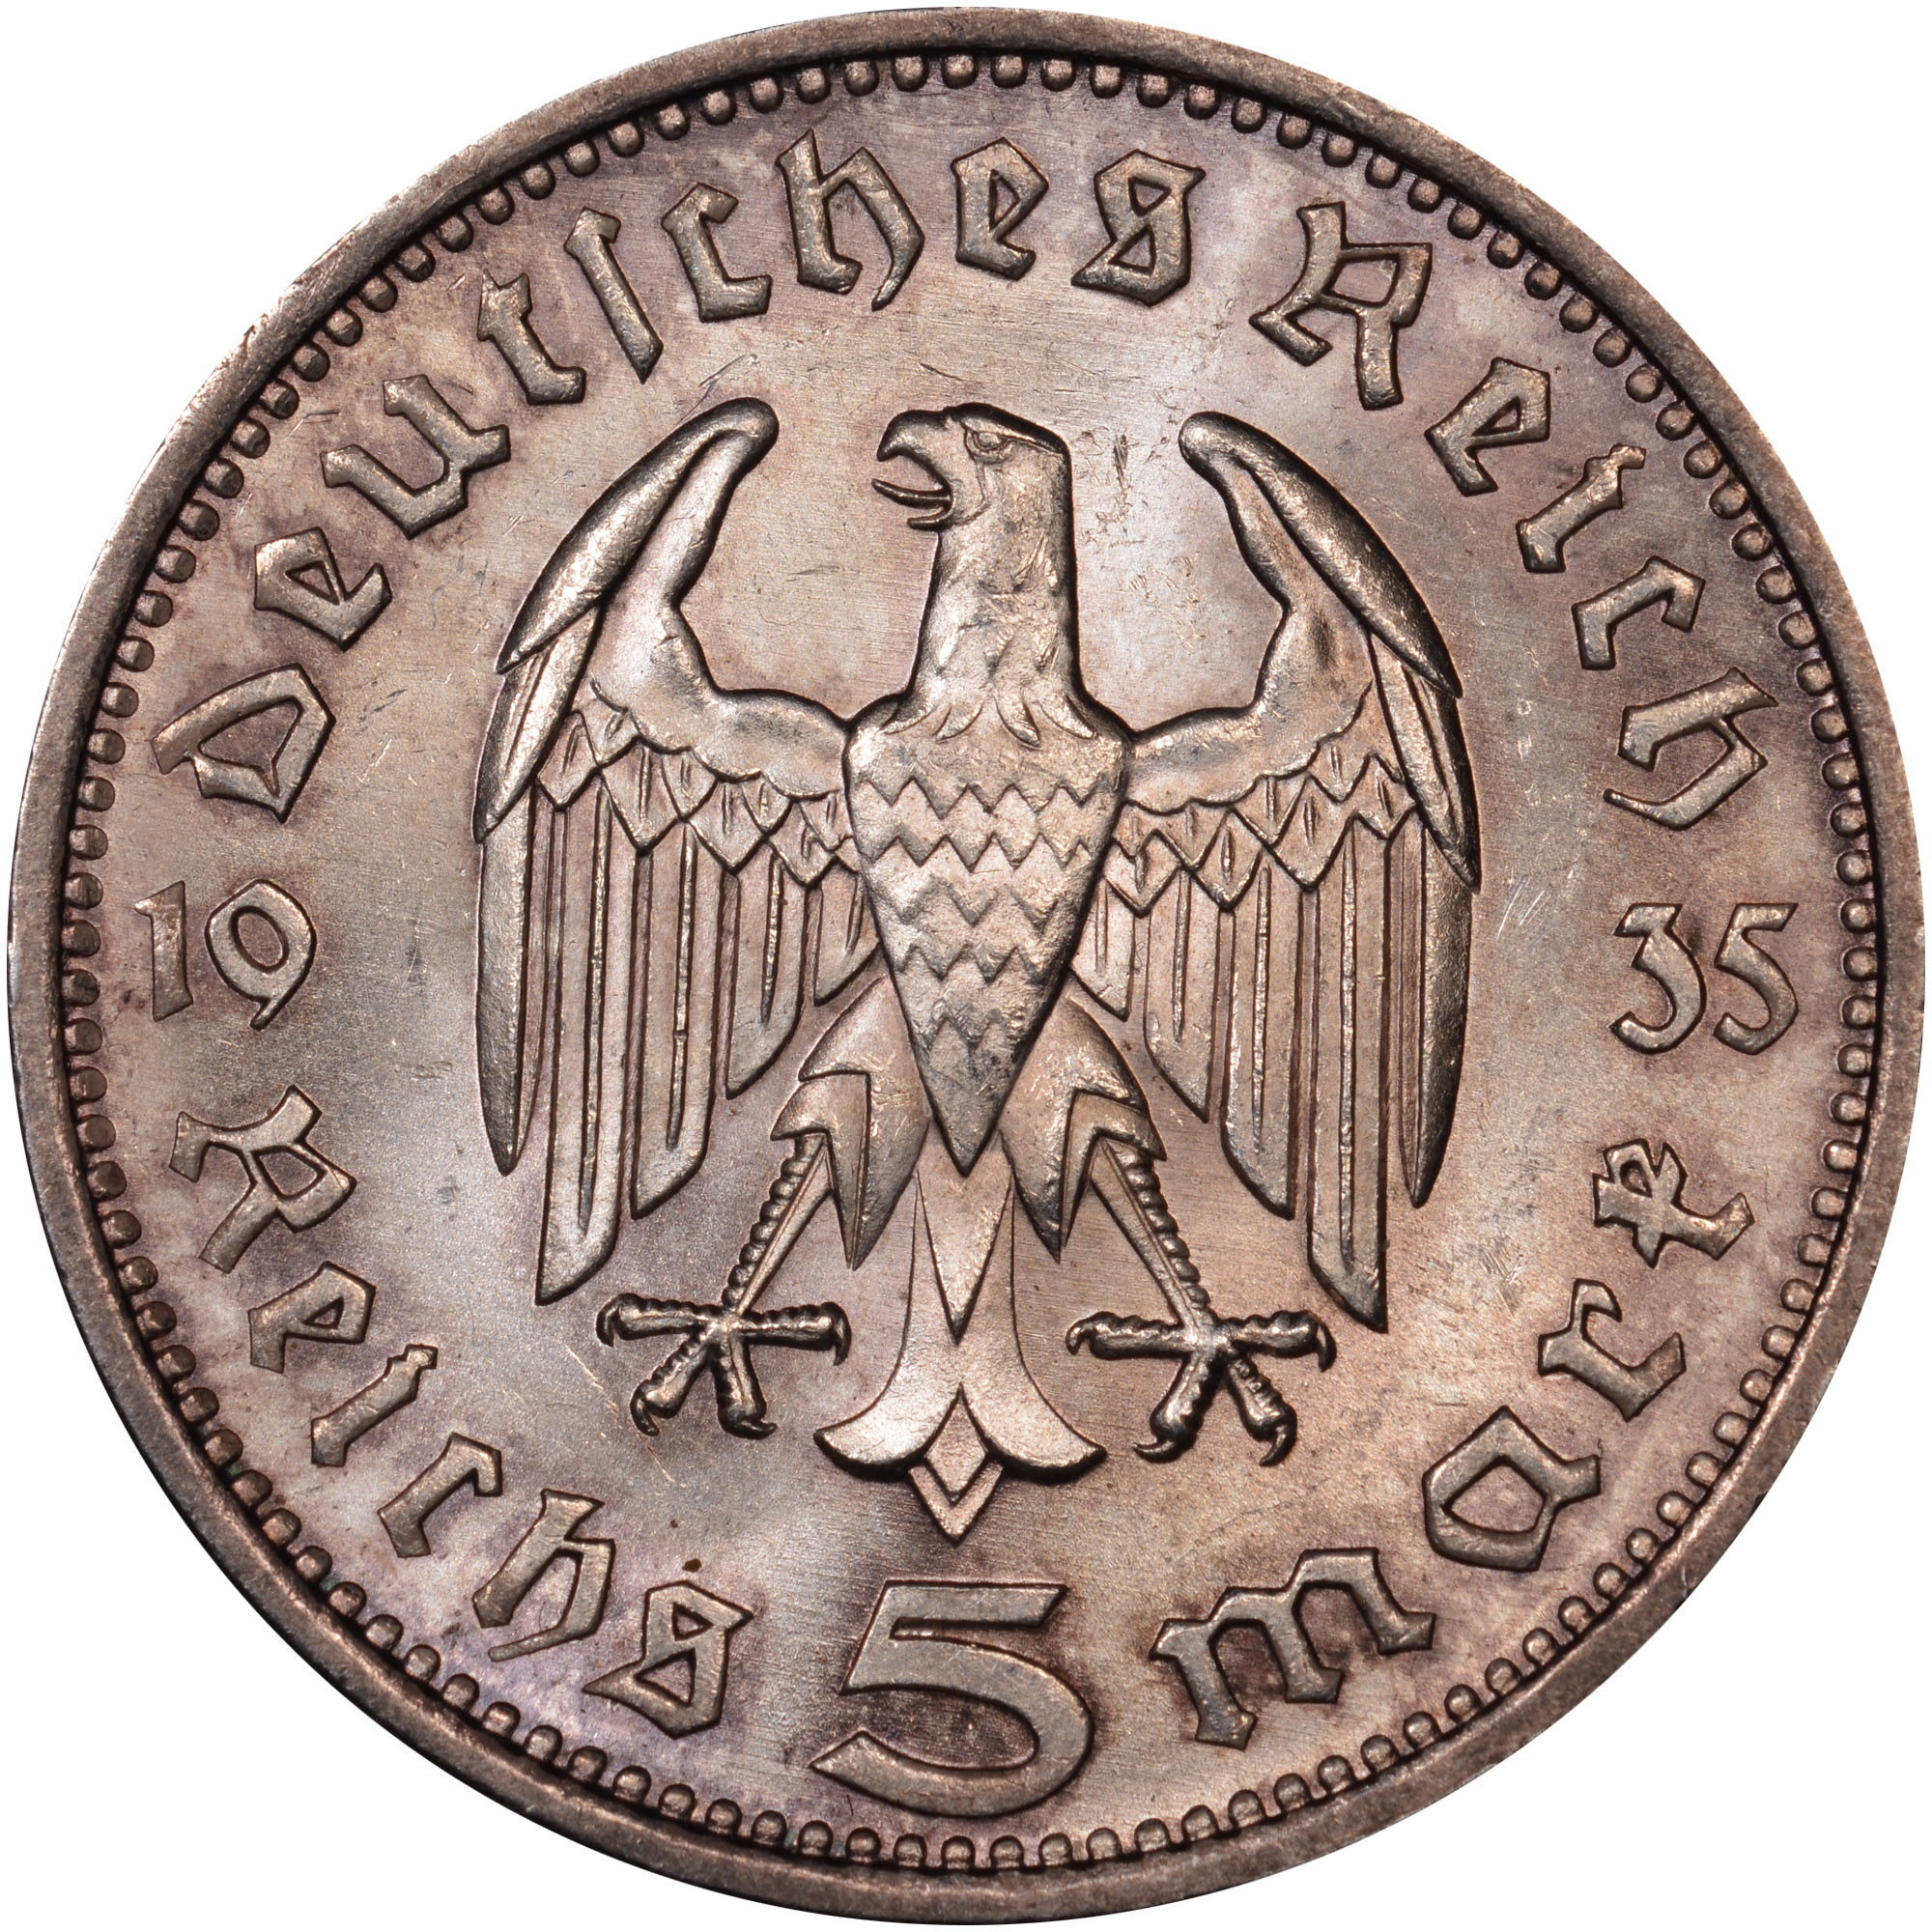 Germany third reich 5 reichsmark km 94 prices & values   ngc.